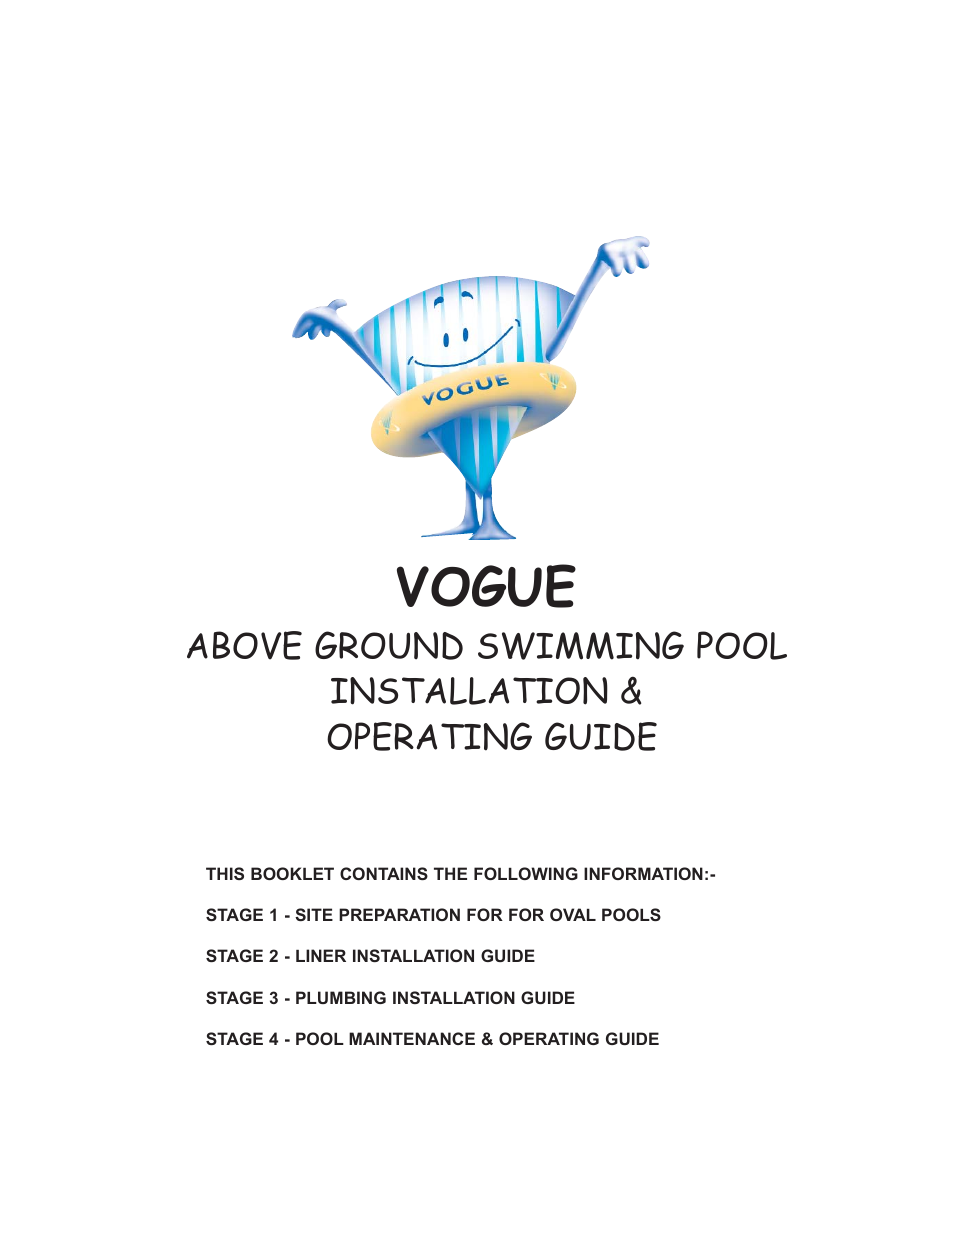 Vogue industrial above ground swimming pool user manual - Usa swimming build a pool handbook ...